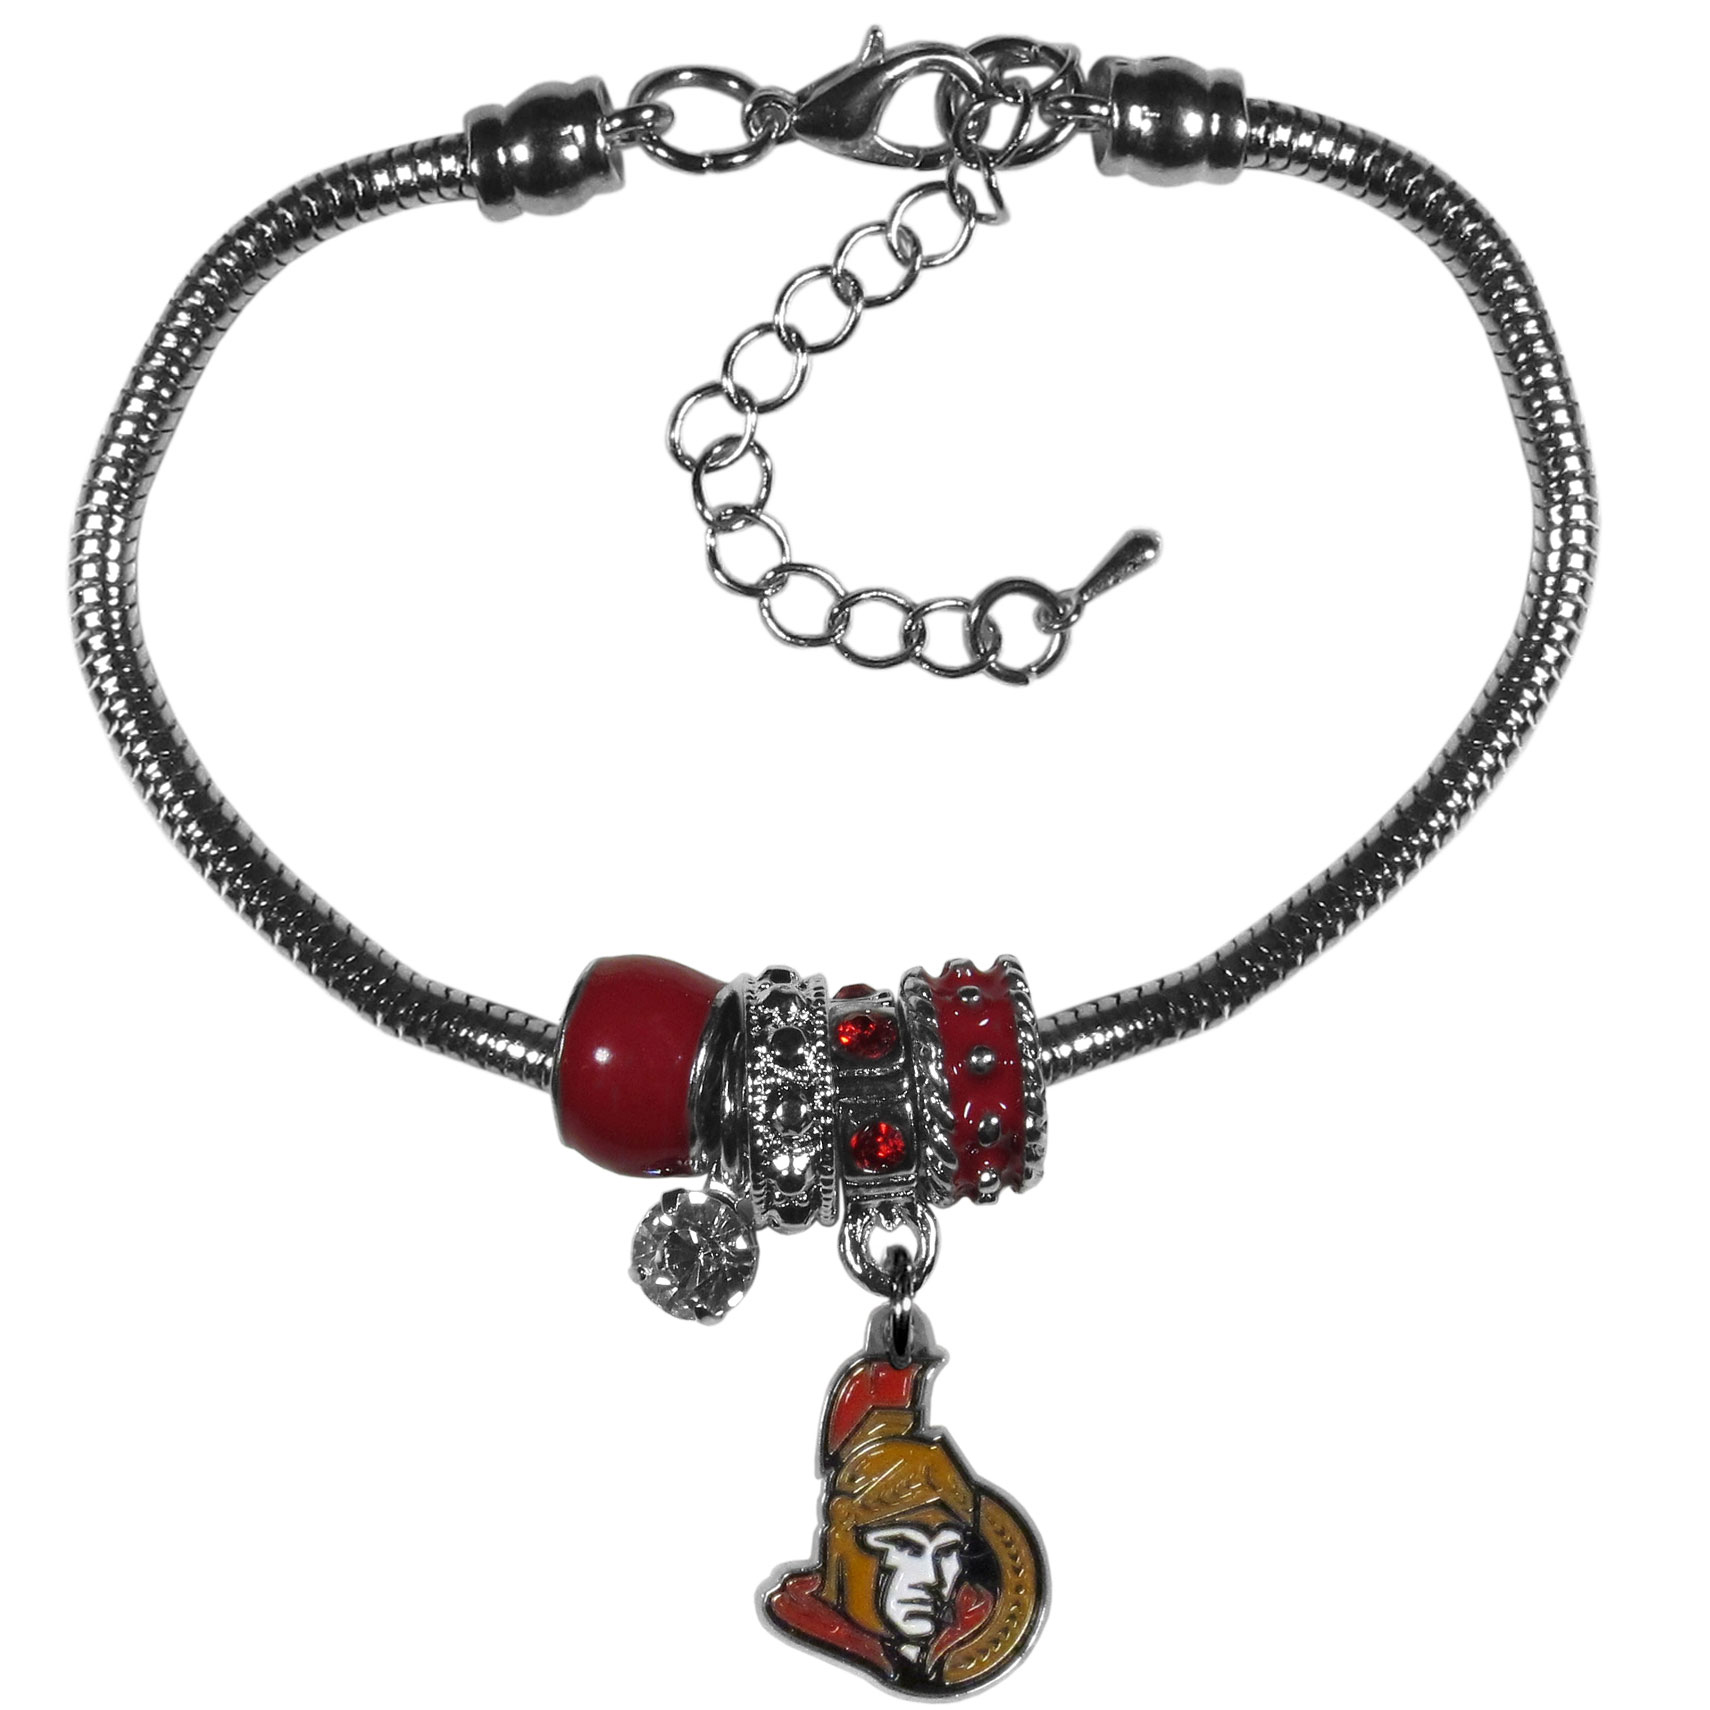 Ottawa Senators® Euro Bead Bracelet - We have combined the wildly popular Euro style beads with your favorite team to create our  Ottawa Senators® bead bracelet. The 7.5 inch snake chain with 2 inch extender features 4 Euro beads with enameled team colors and rhinestone accents with a high polish, nickel free charm and rhinestone charm. Perfect way to show off your team pride.